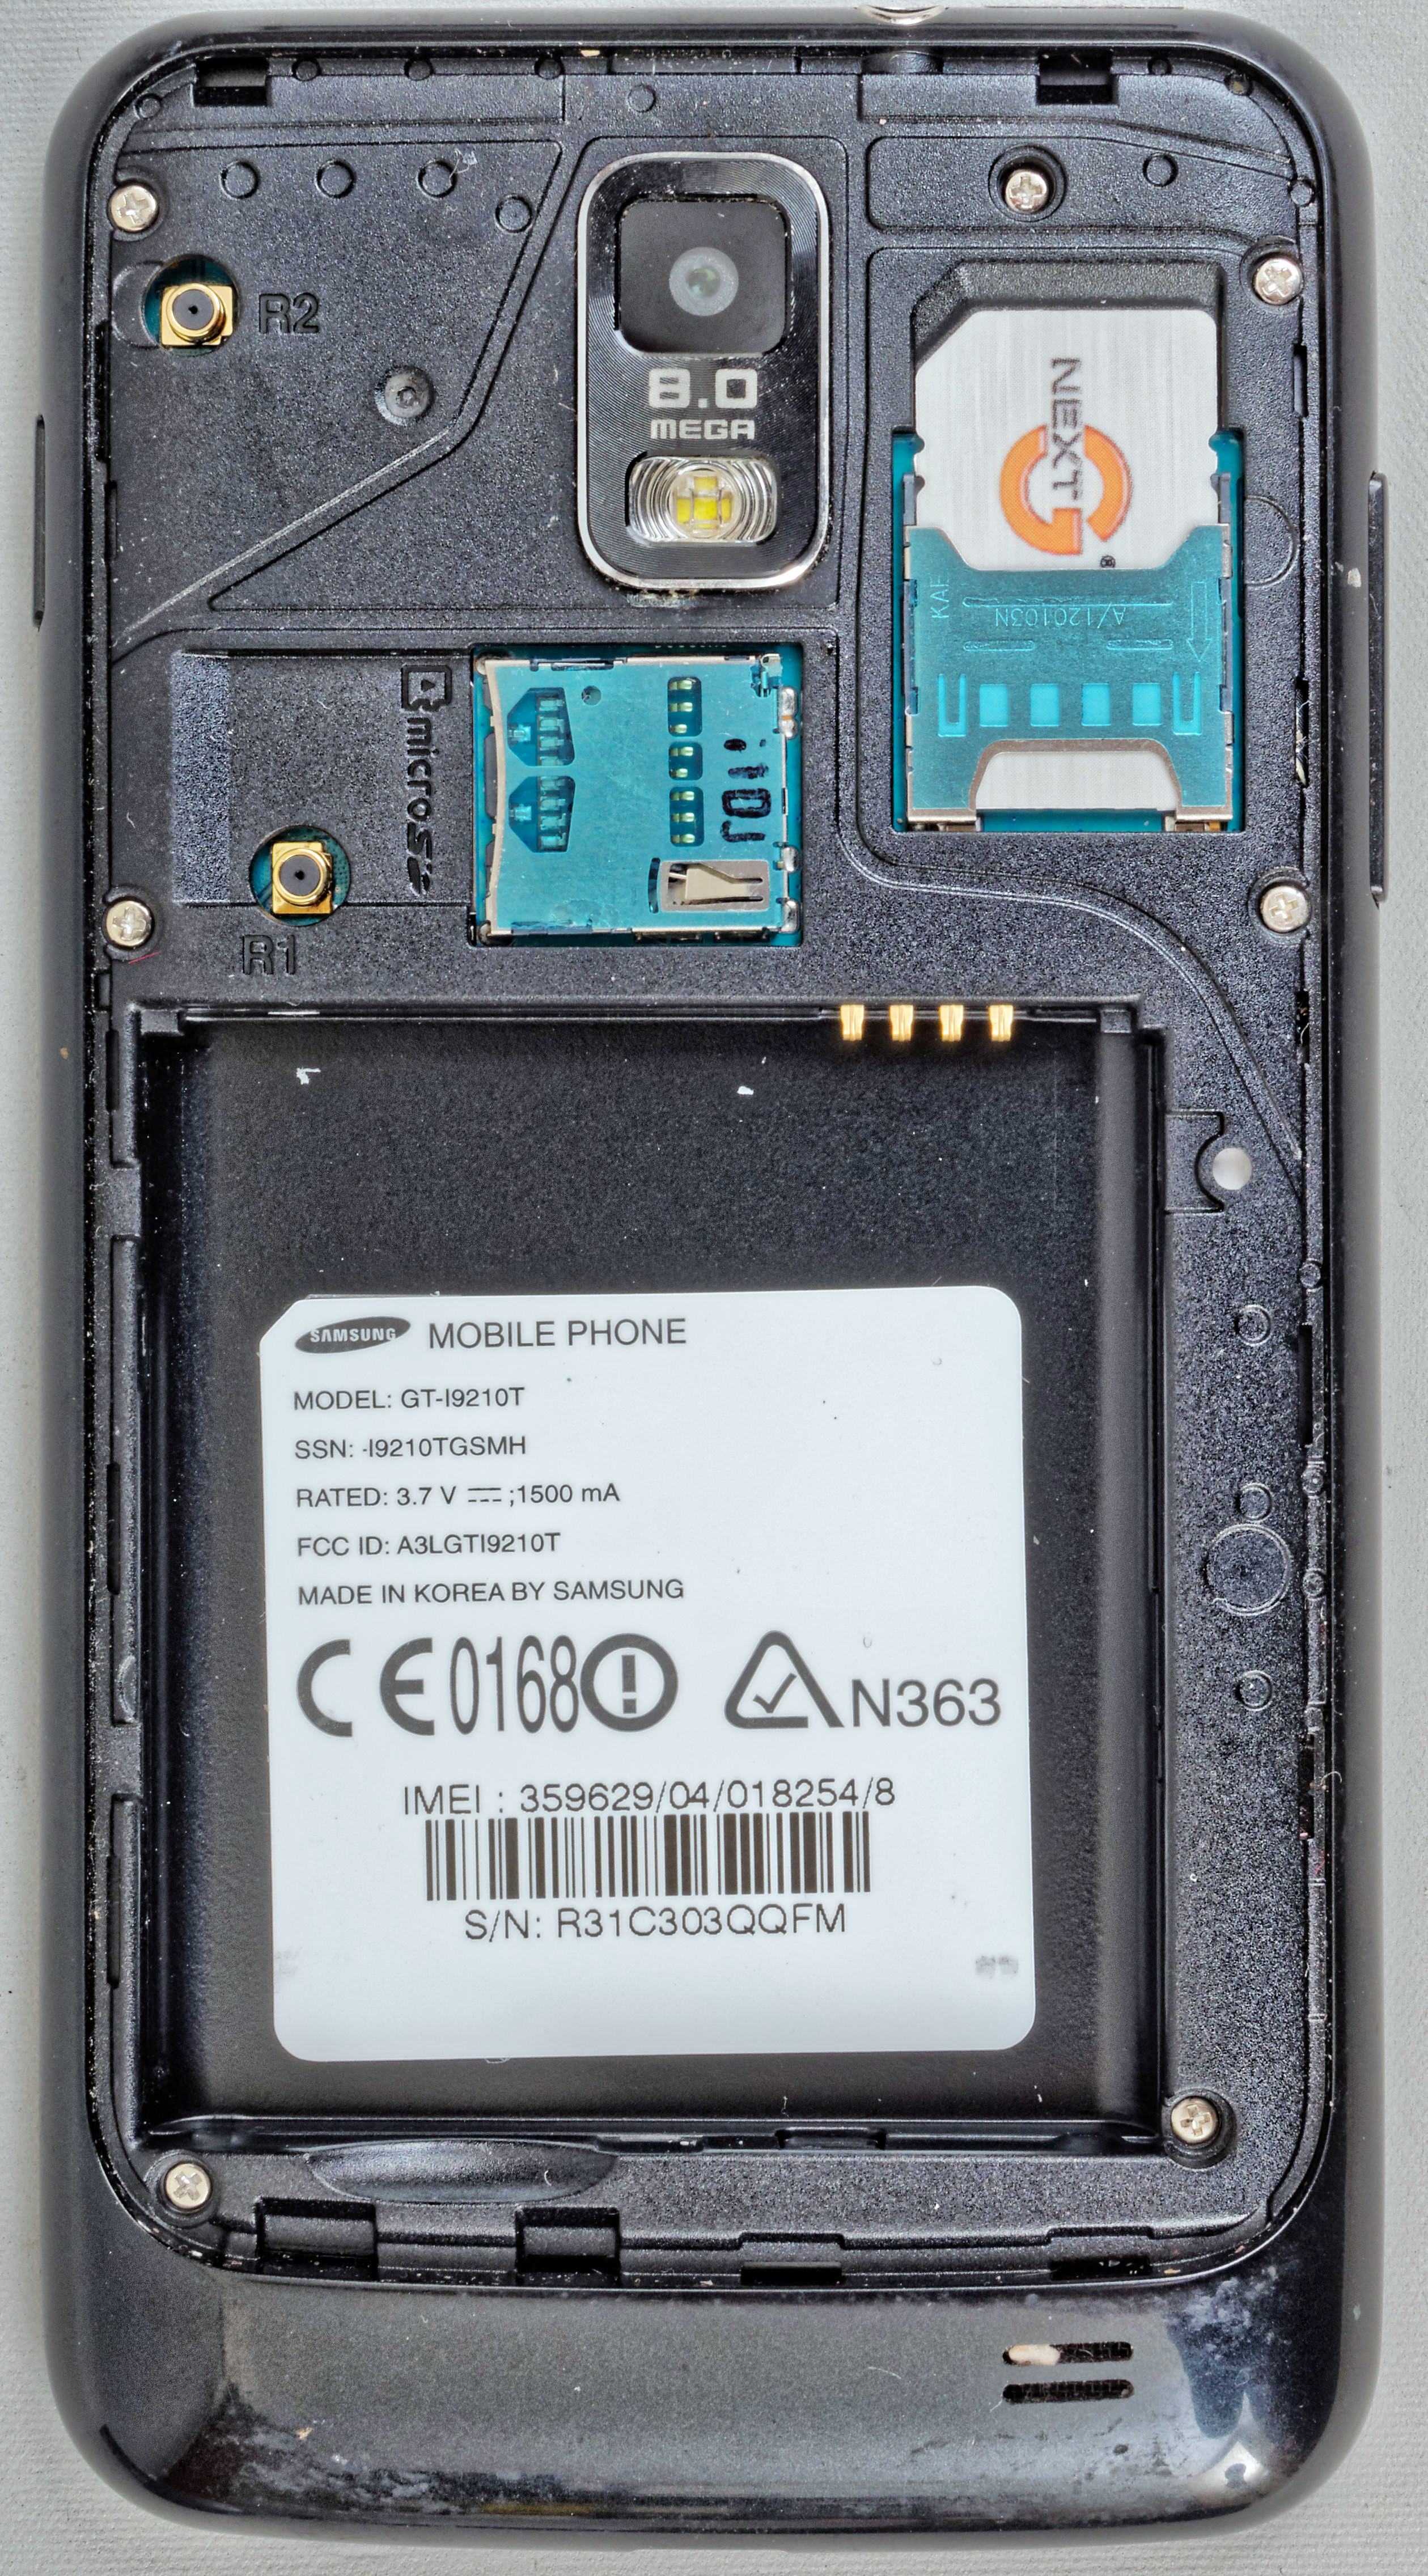 This should be Samsung-GT-I9210T.jpeg.  Is it missing?